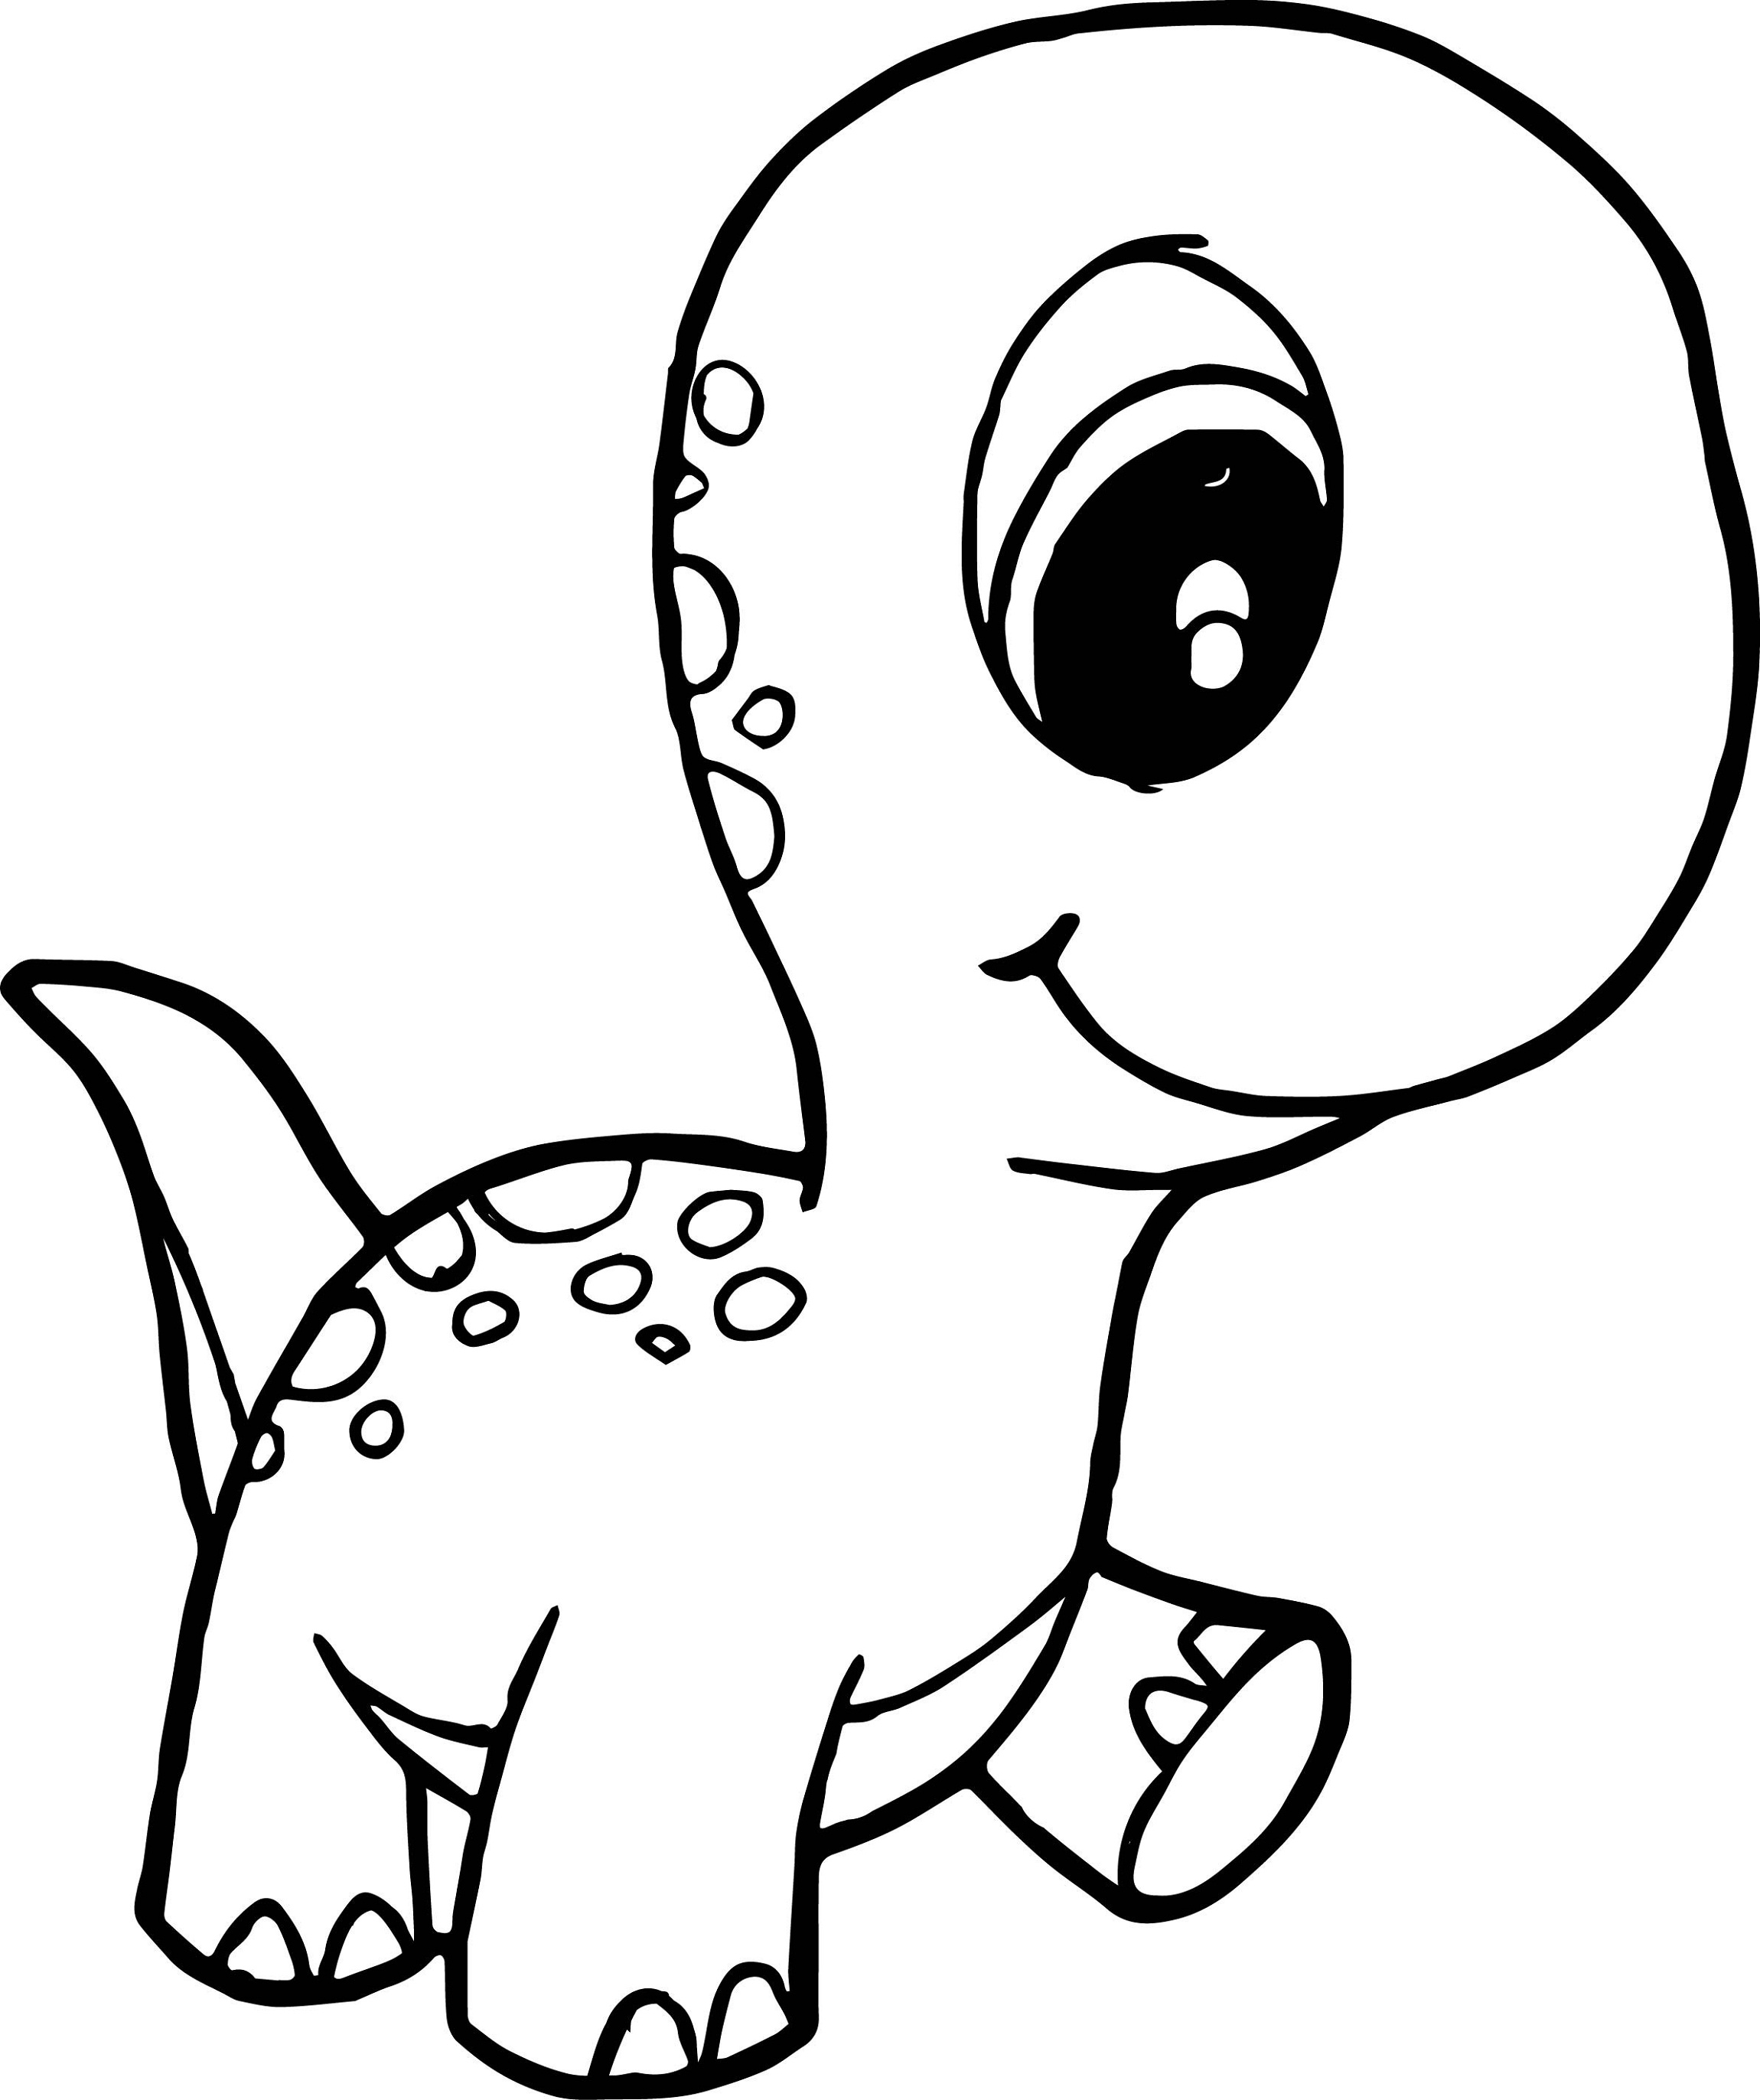 dinosaur print out coloring pages 10 free printable dinosaur coloring pages 1nza pages dinosaur coloring out print